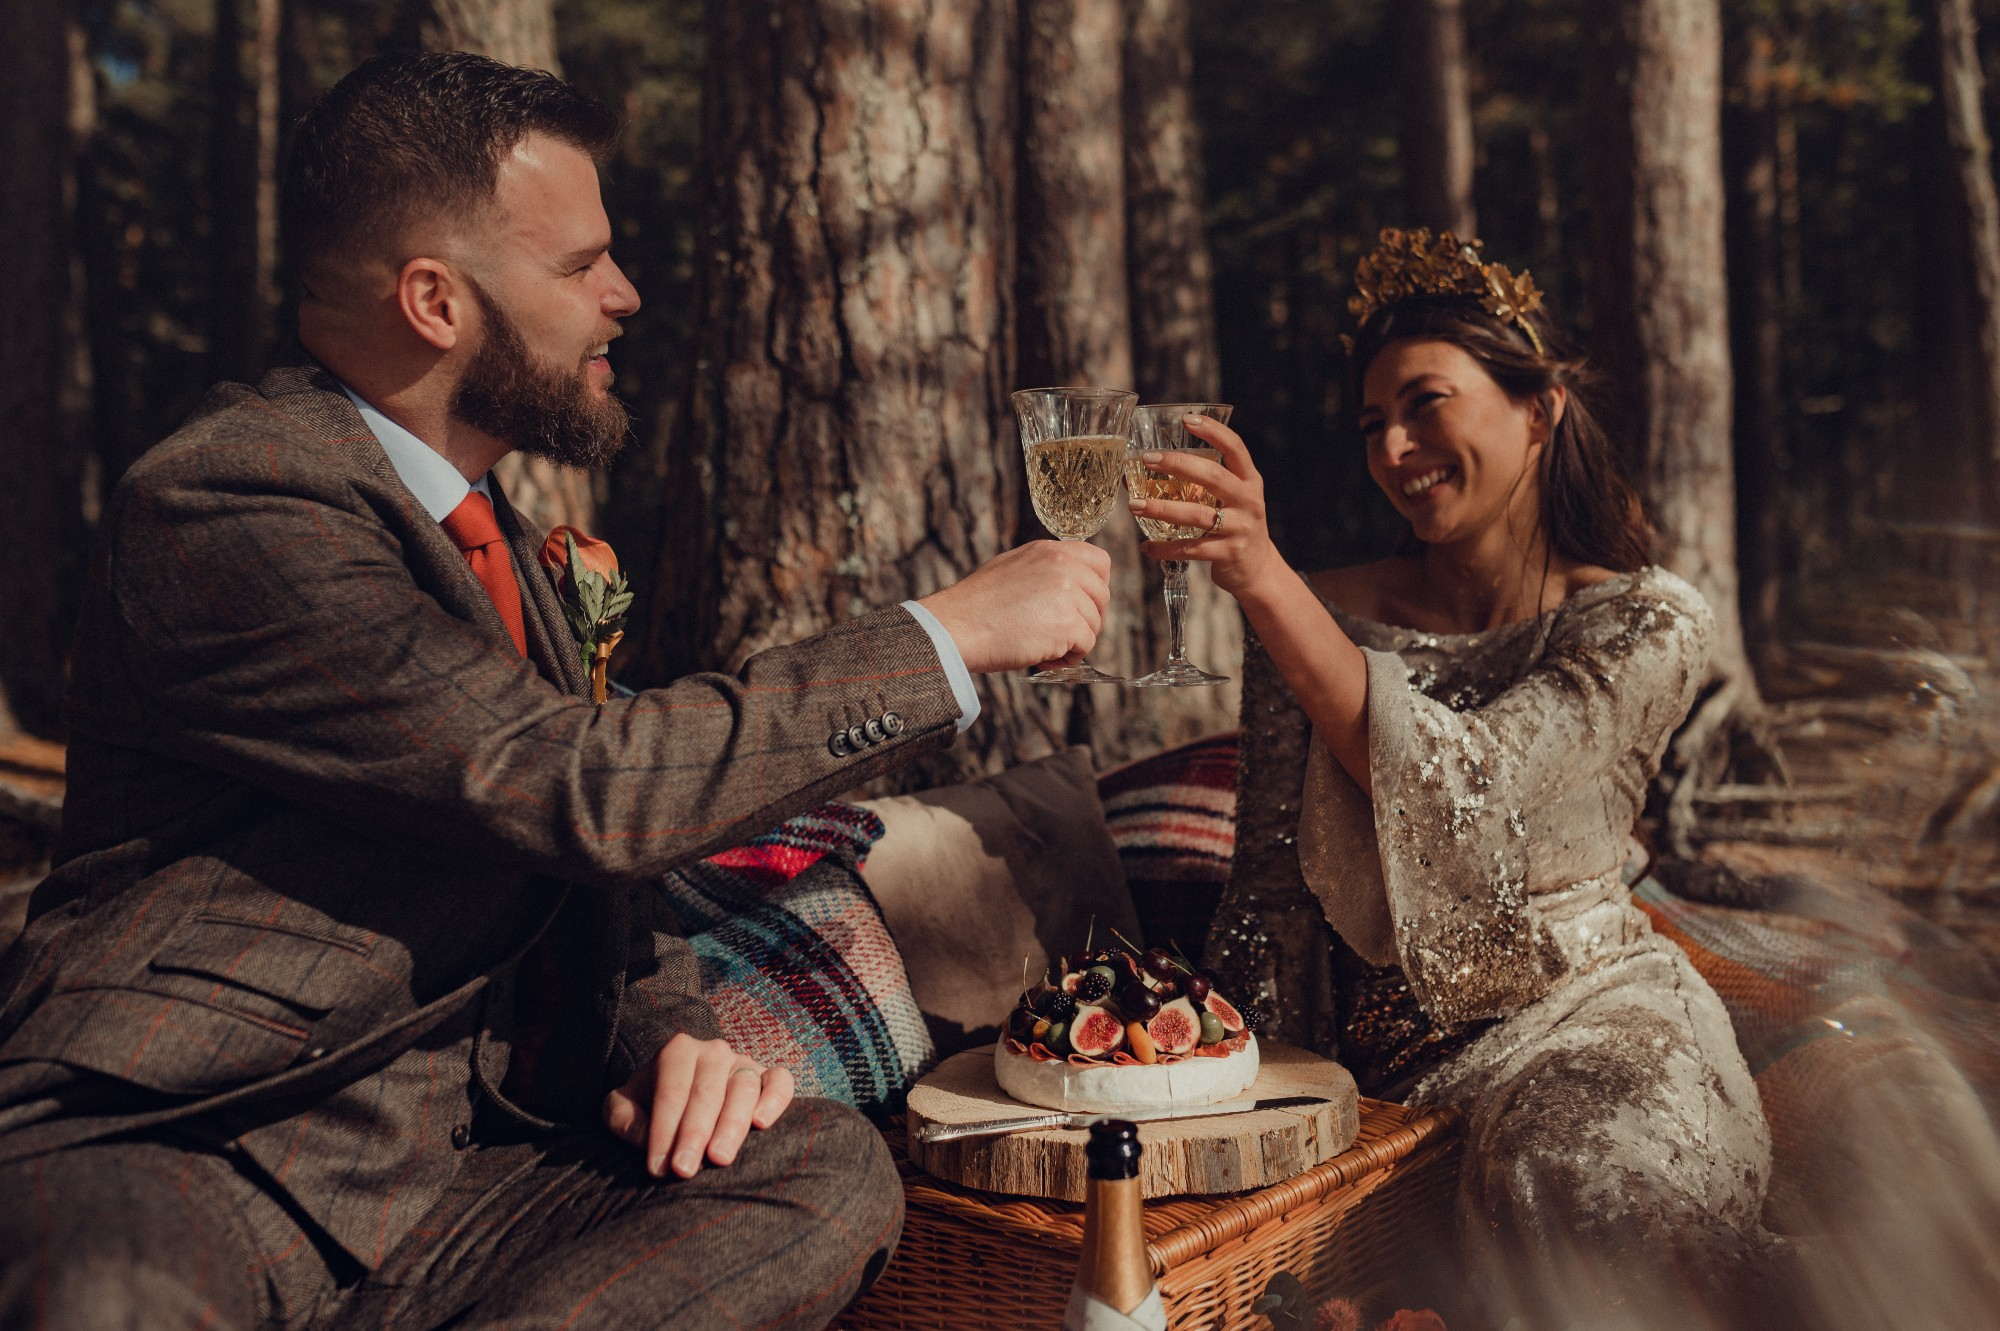 Bride and groom toast each other at their Highland wedding picnic